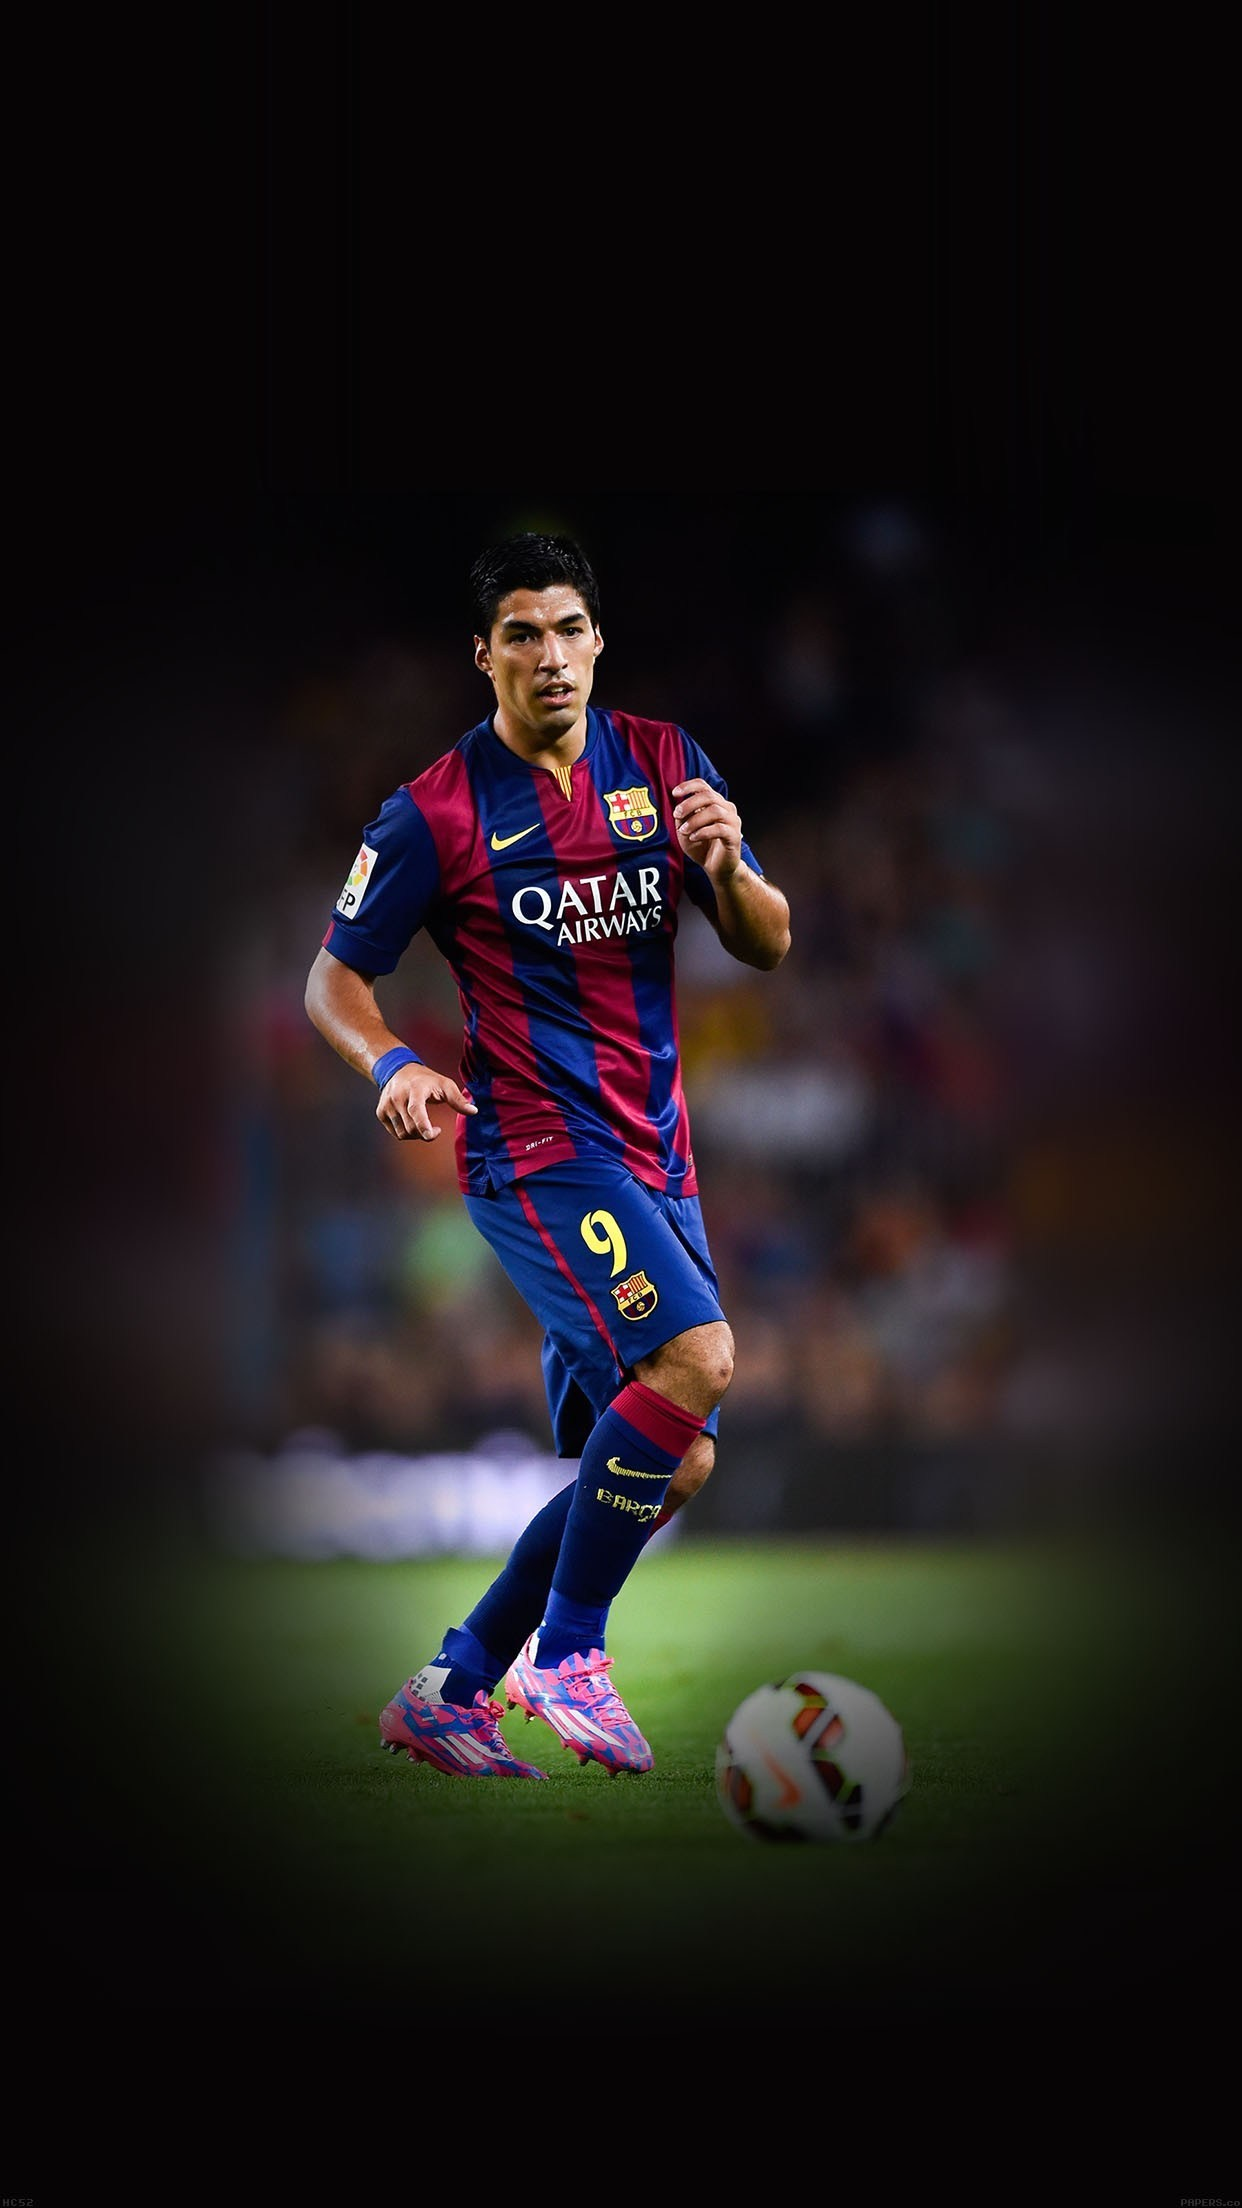 Cool Soccer Wallpapers For Iphone 66 Images